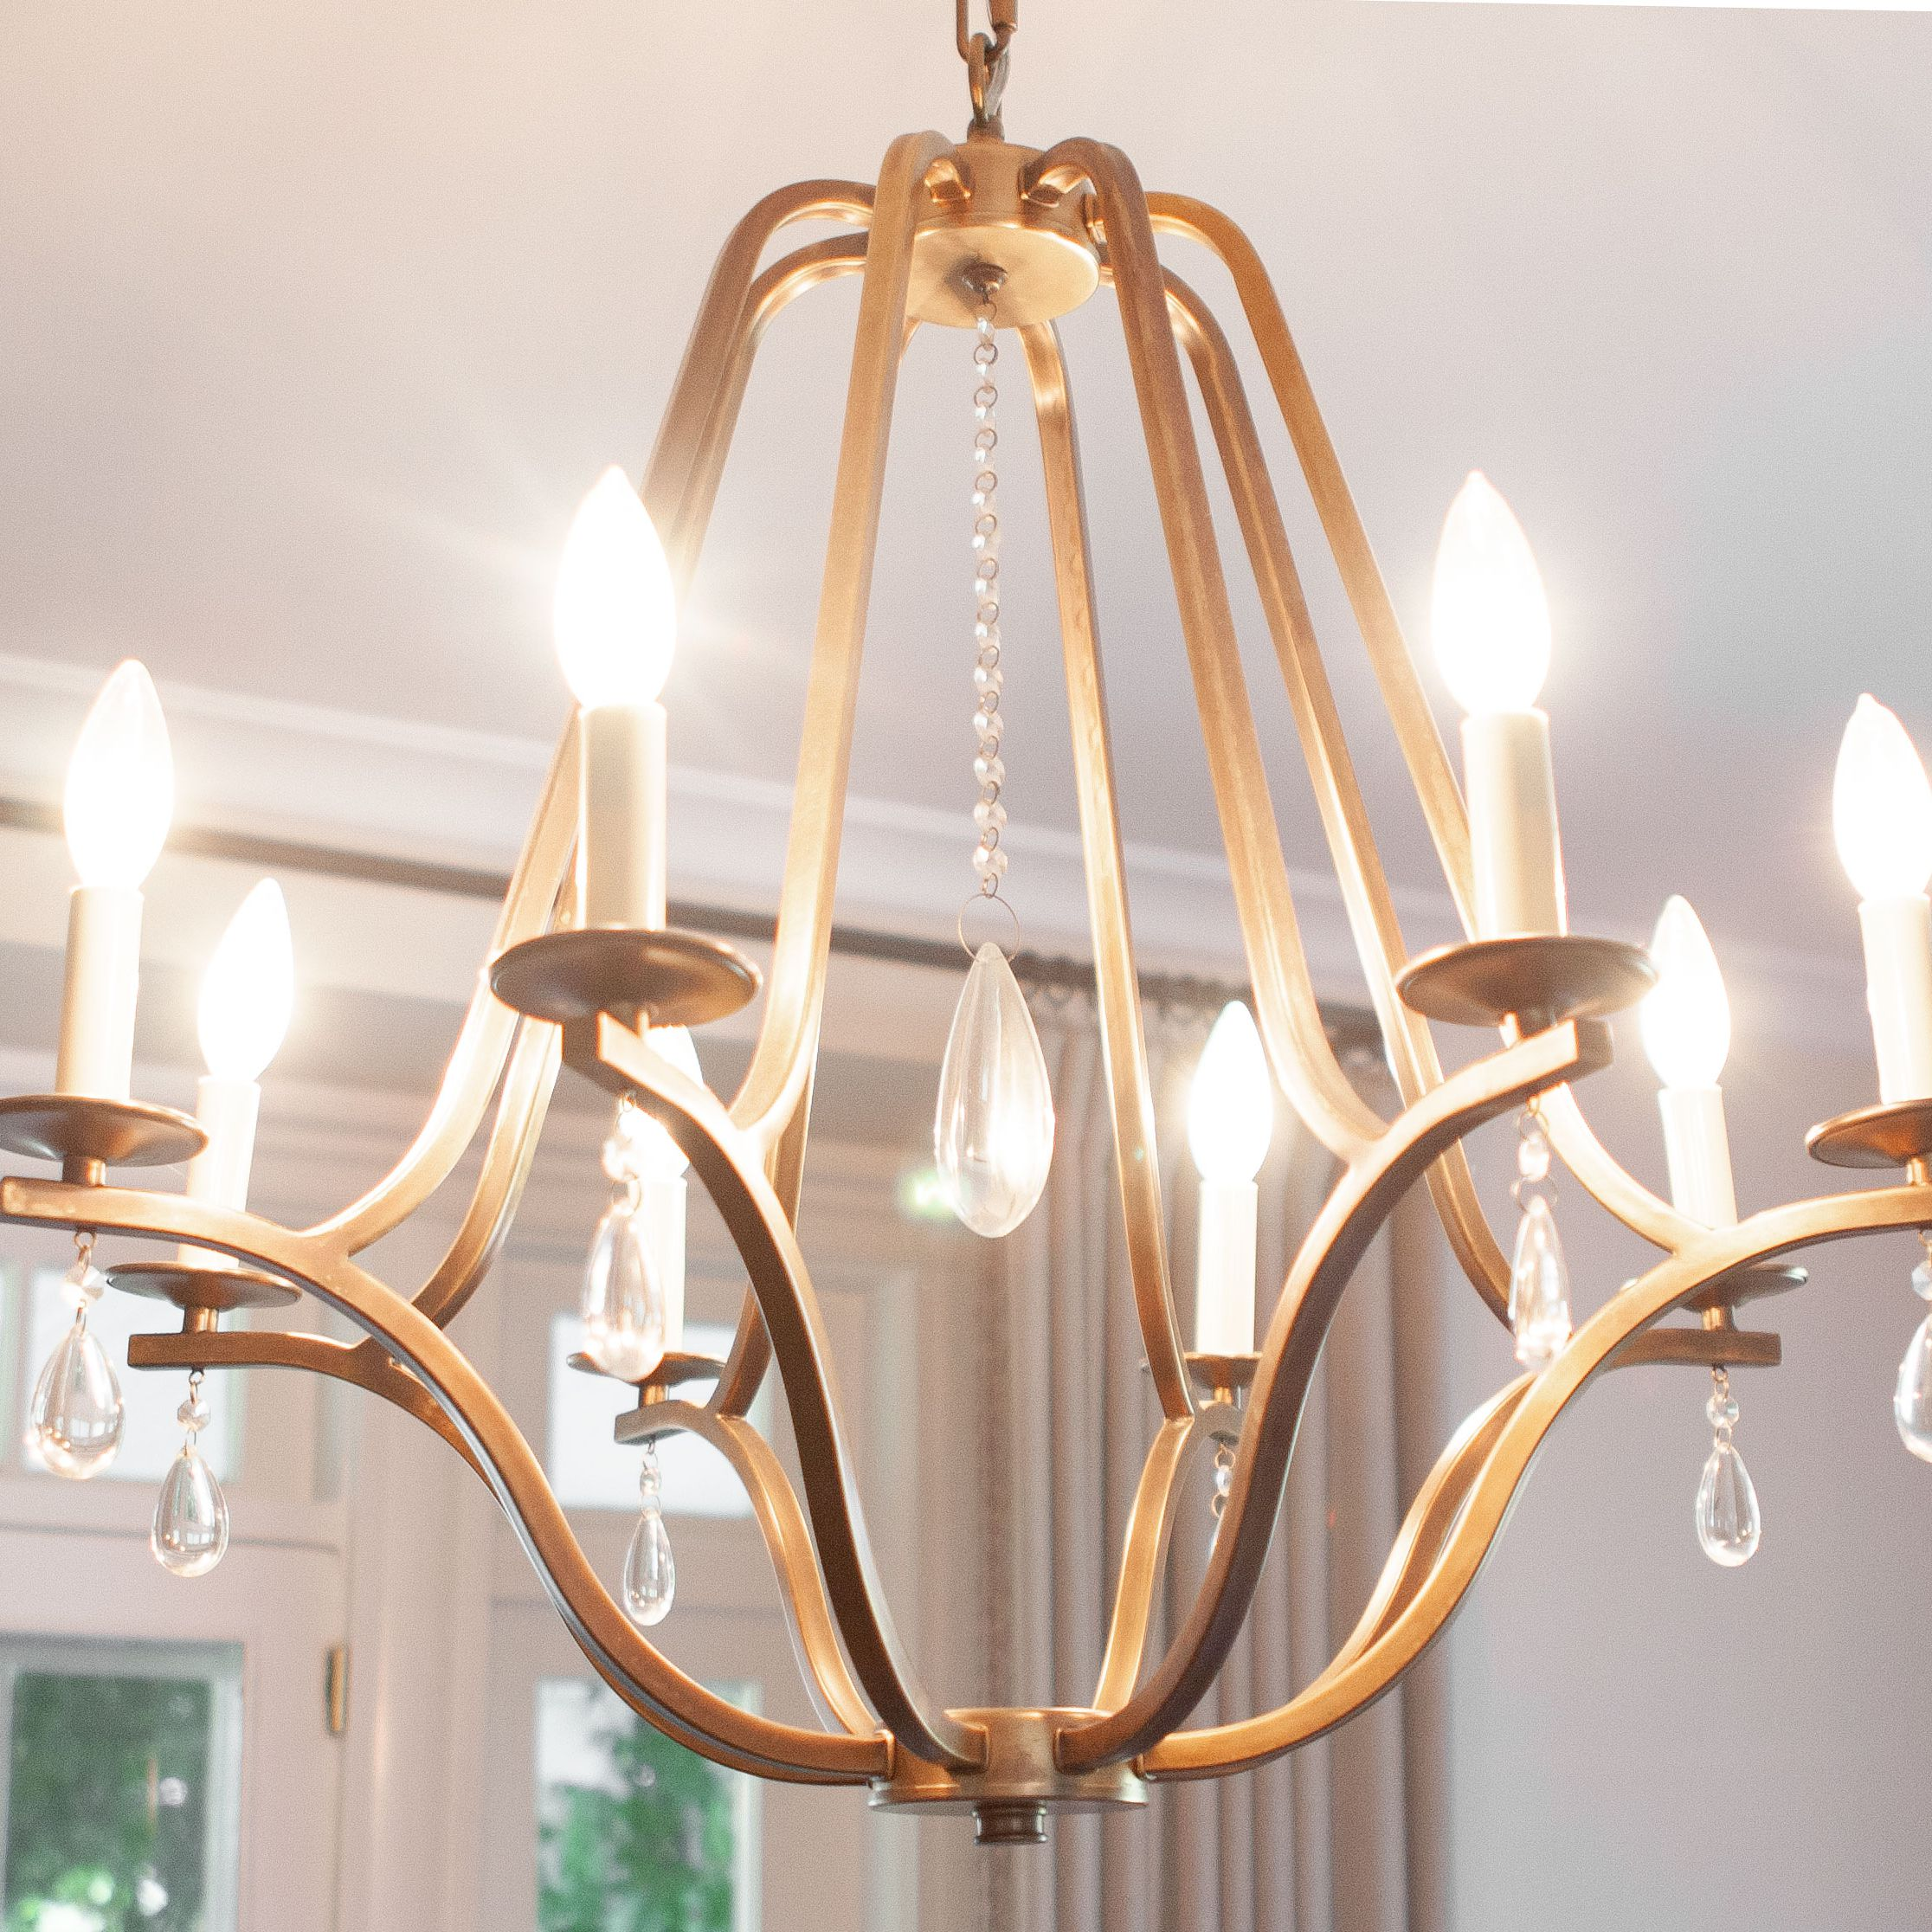 Hanging A Dining Room Chandelier At The Perfect Height